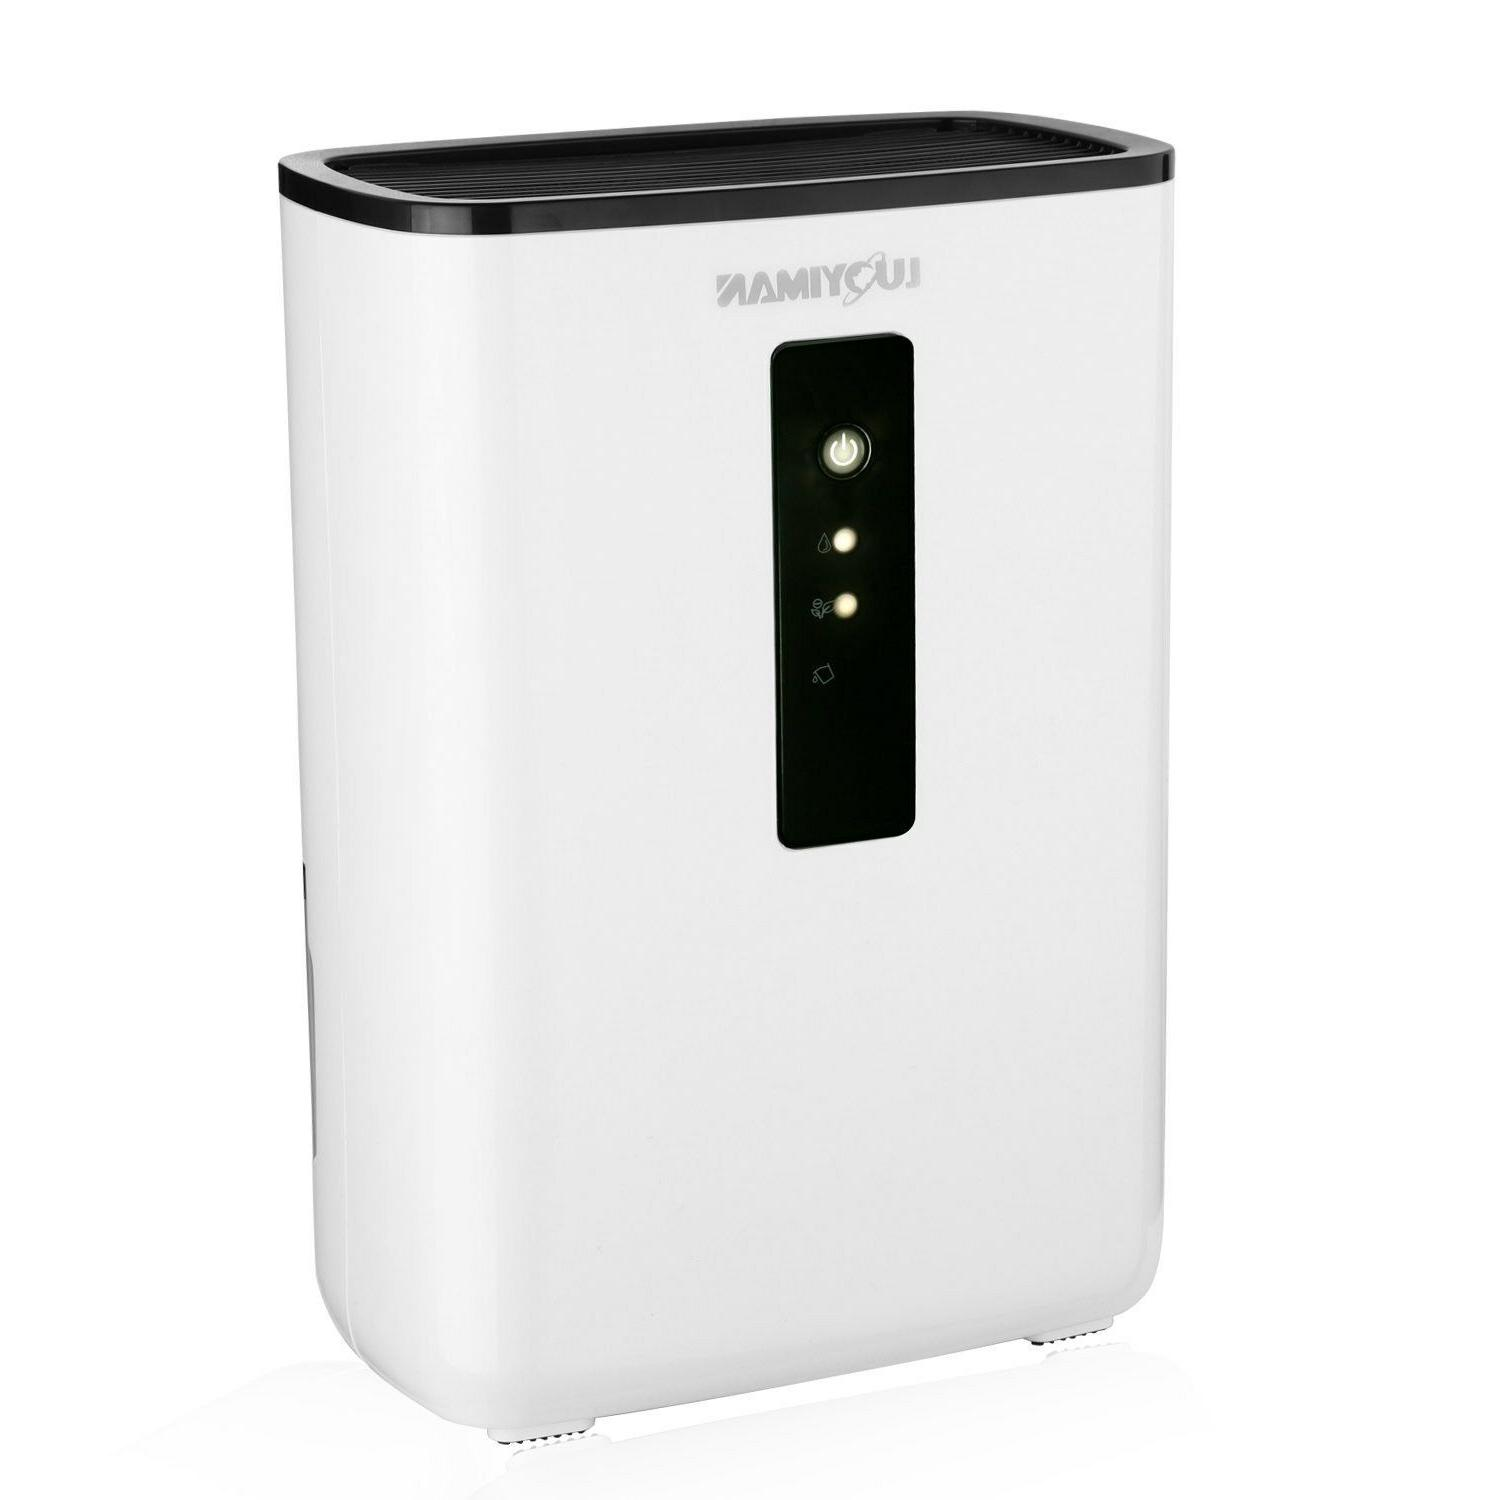 electric dehumidifier quiet operation uv sterilization 2